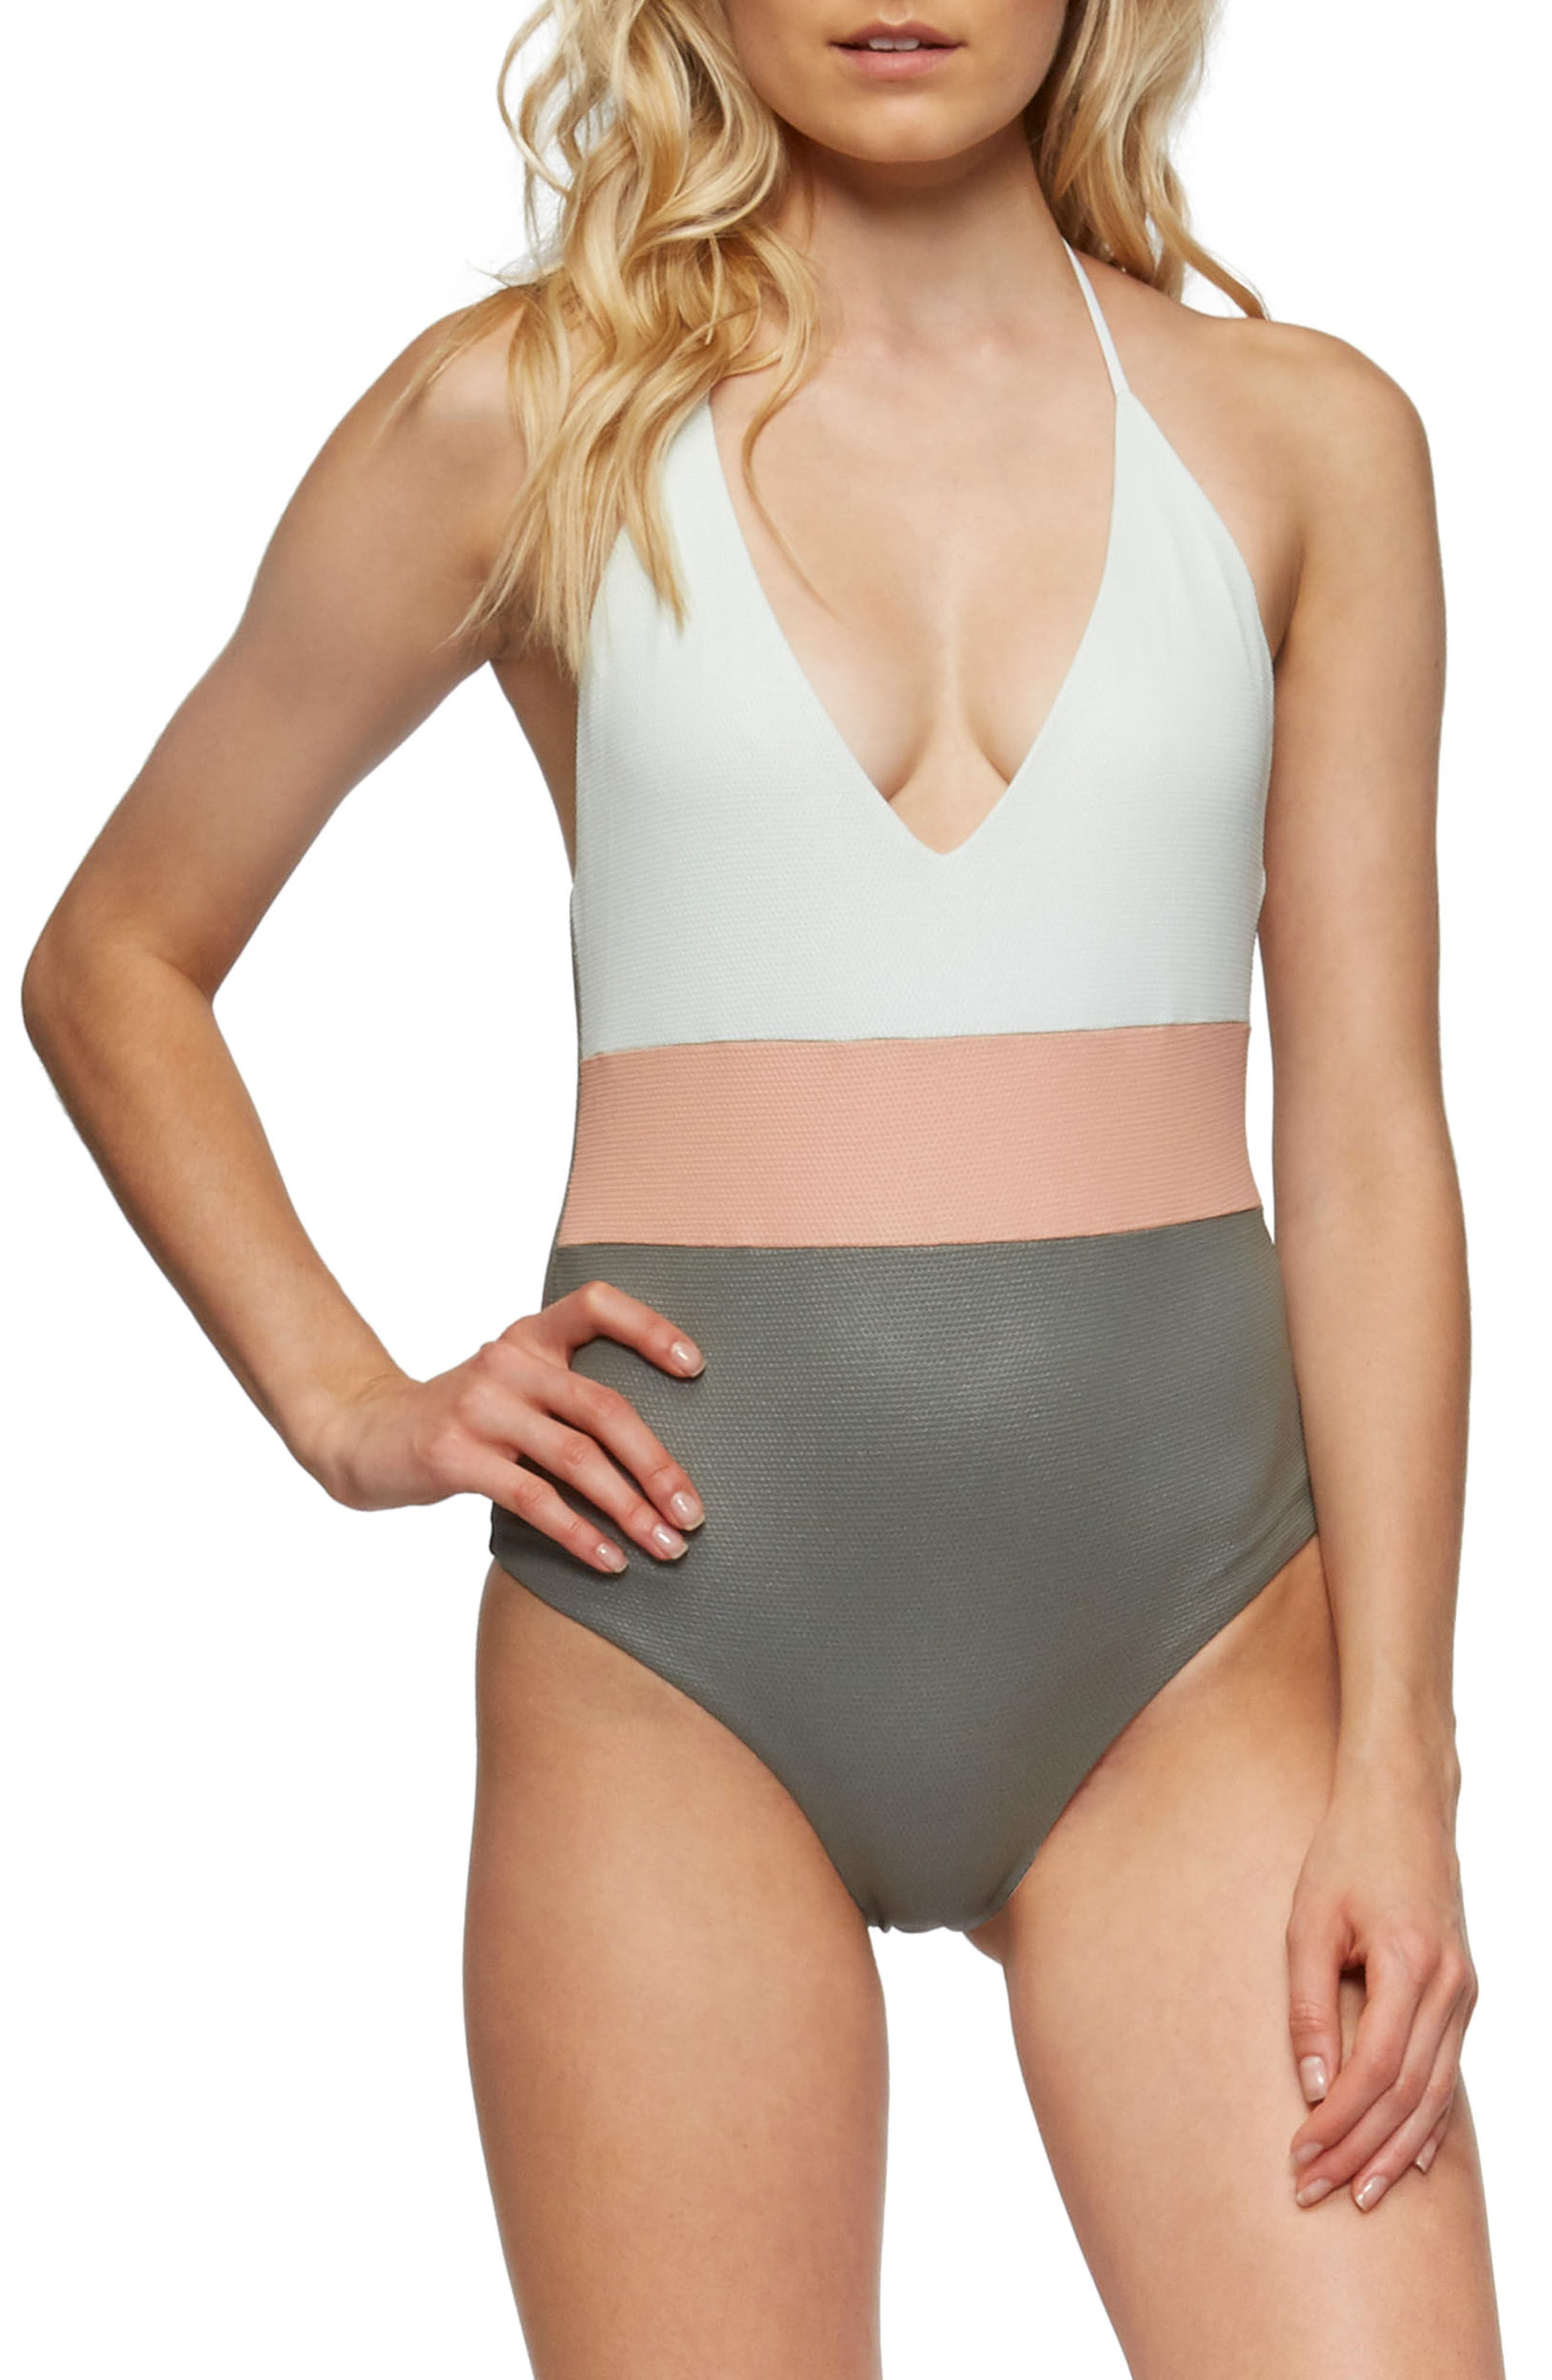 Chase Glossy One-Piece Swimsuit,                             Main thumbnail 1, color,                             Cove Grey